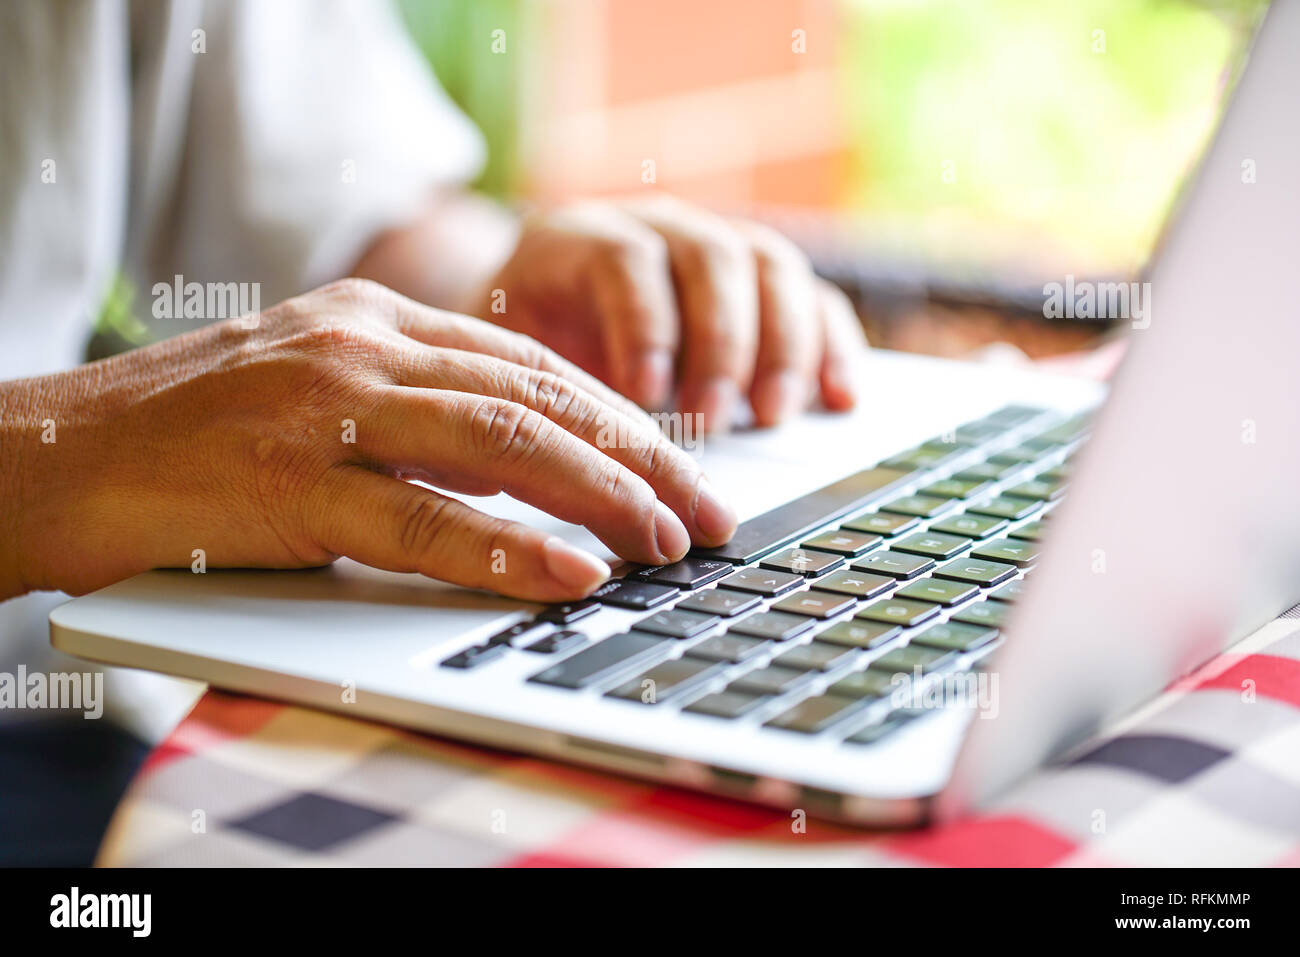 Working on the lap top - Stock Image